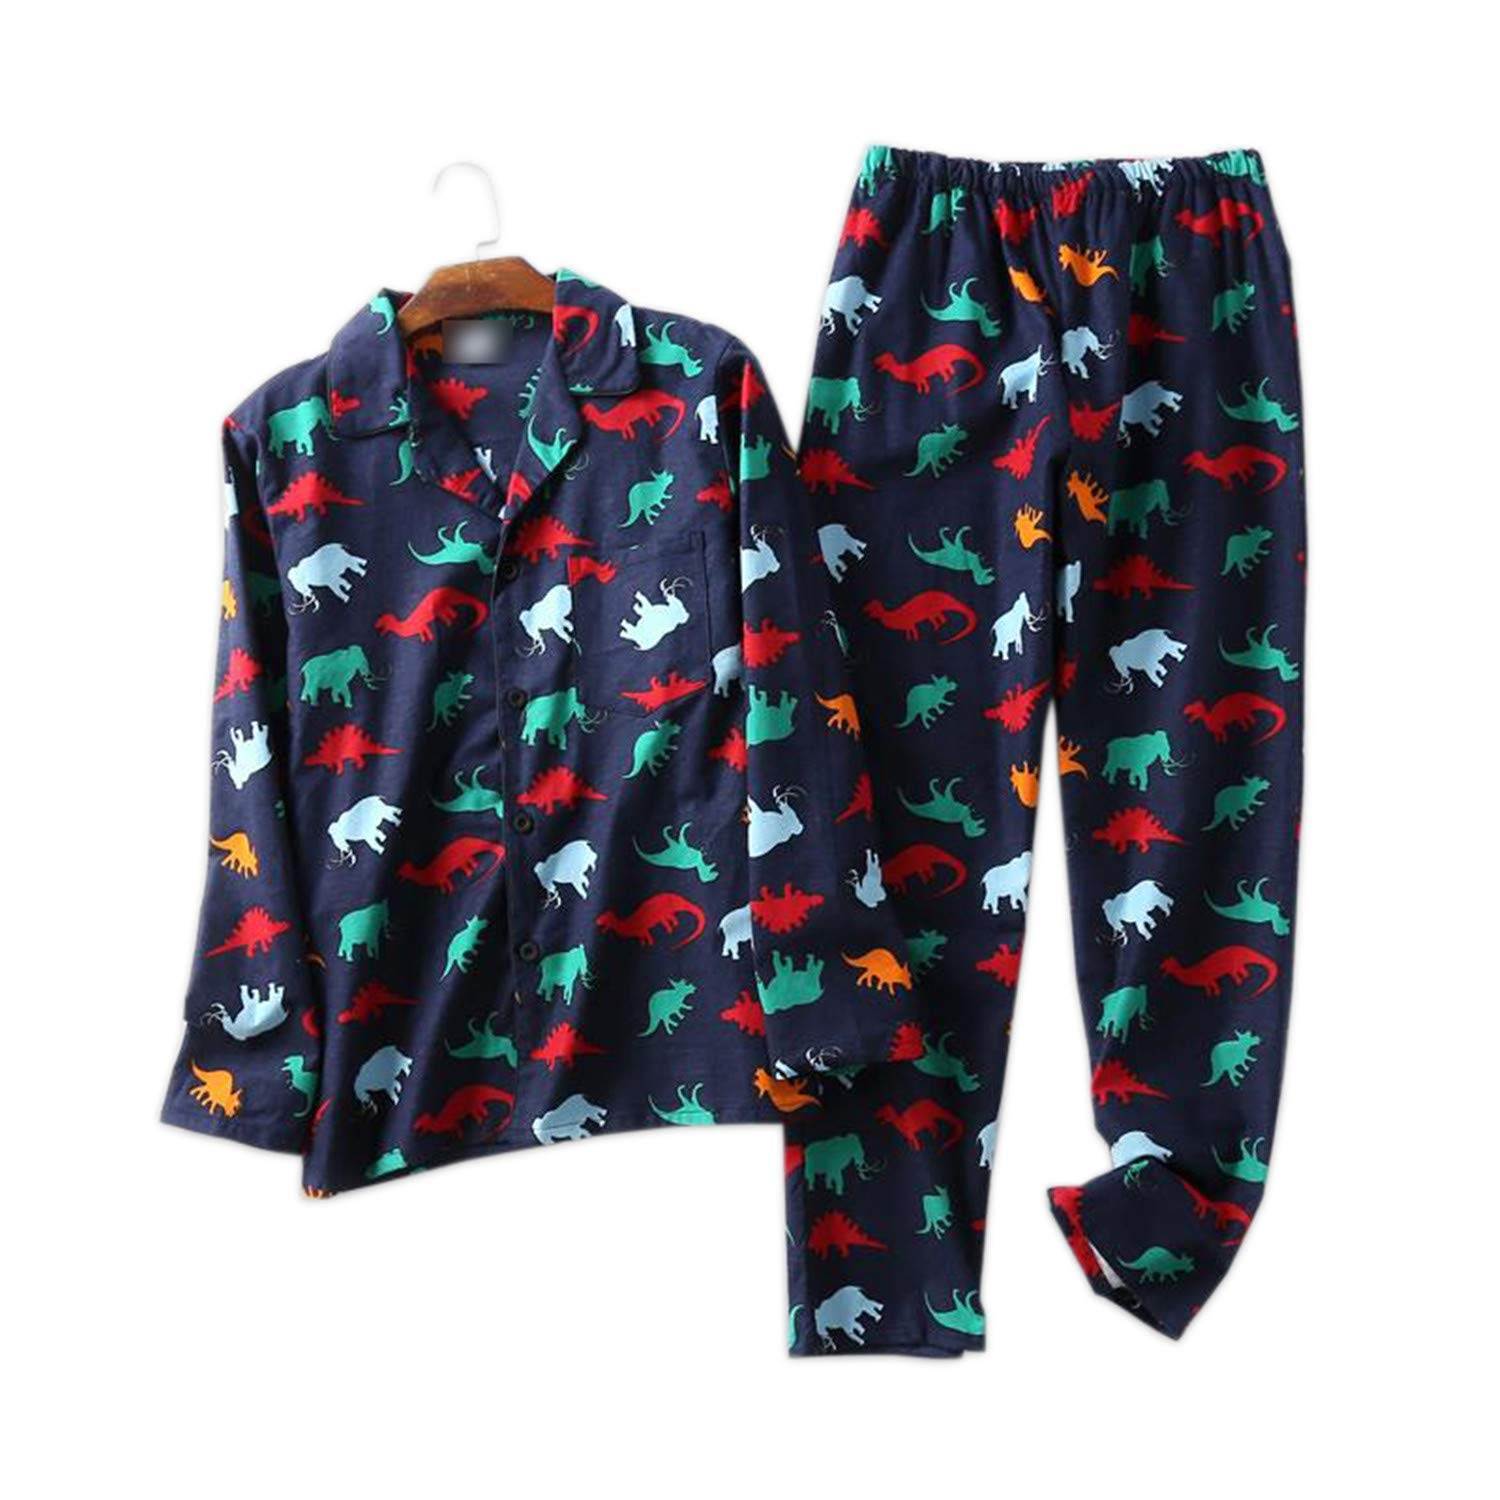 Thadensama 100% Cotton Dinosaur Pajamas Sets Mens Sexy Plaid Casual Sleepwear for Male Pyjamas Pijama Hombre Mens Cartoon Pajamas 4Pb XL at Amazon Mens ...